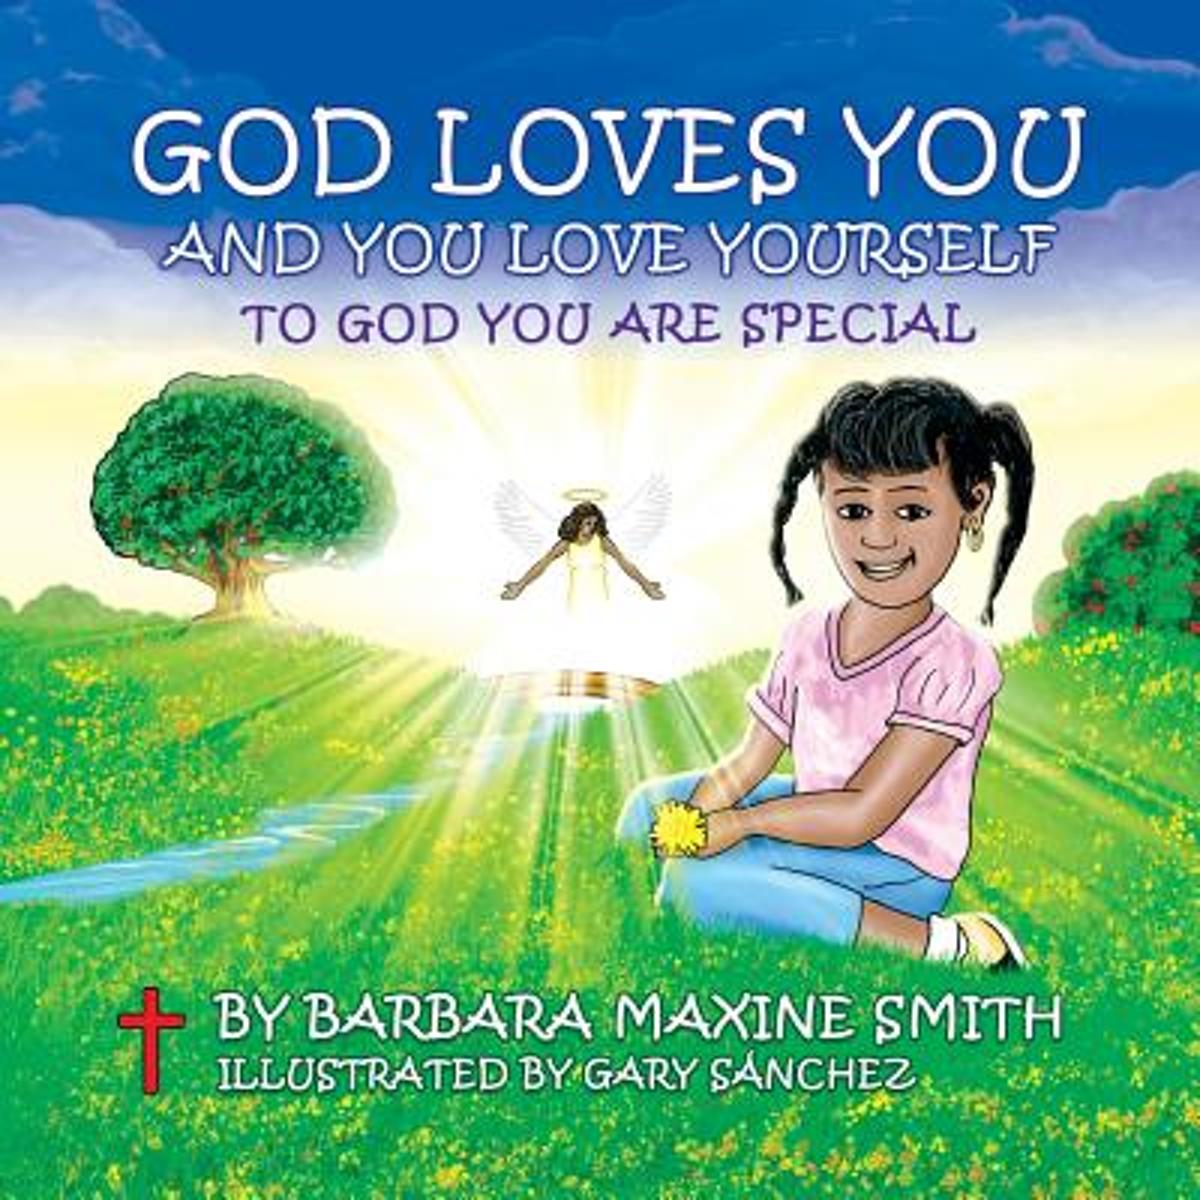 God Loves You and You Love Yourself -To God You Are Special